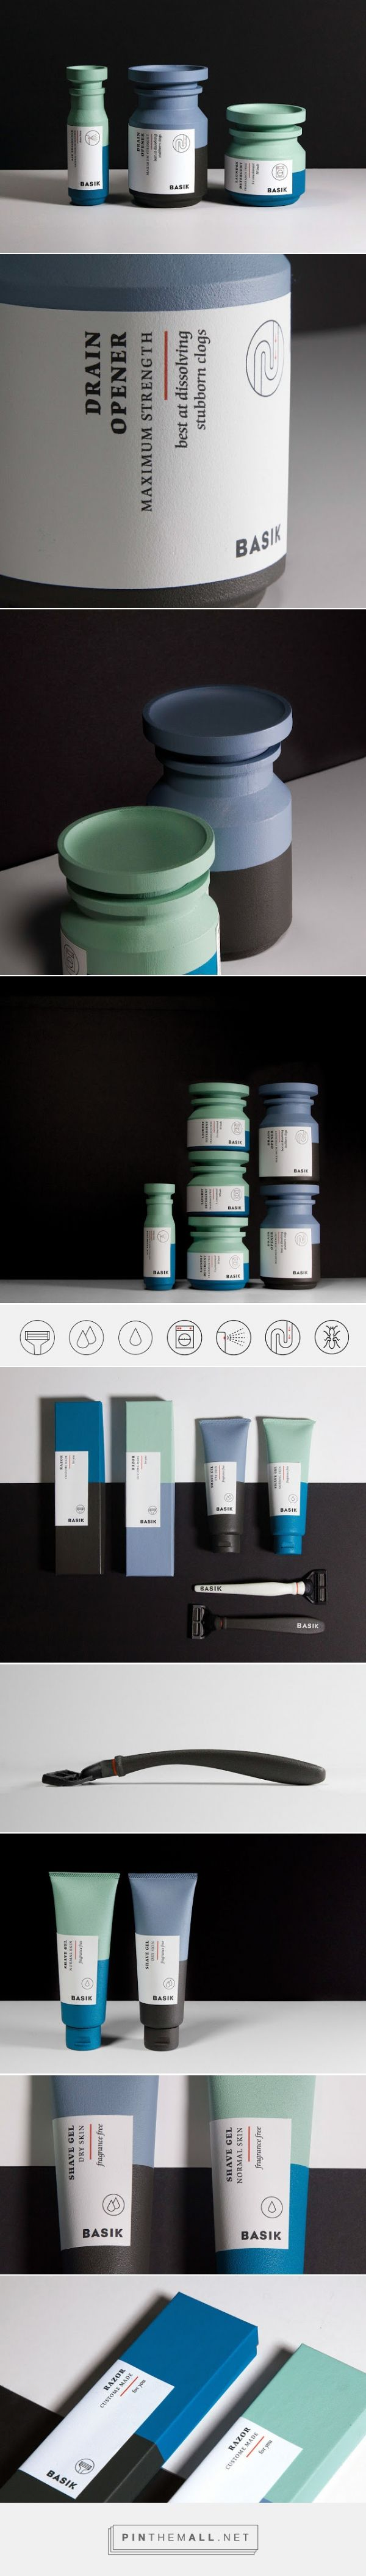 Basik #packaging by Saana Hellsten - http://www.packagingoftheworld.com/2014/12/basik.html